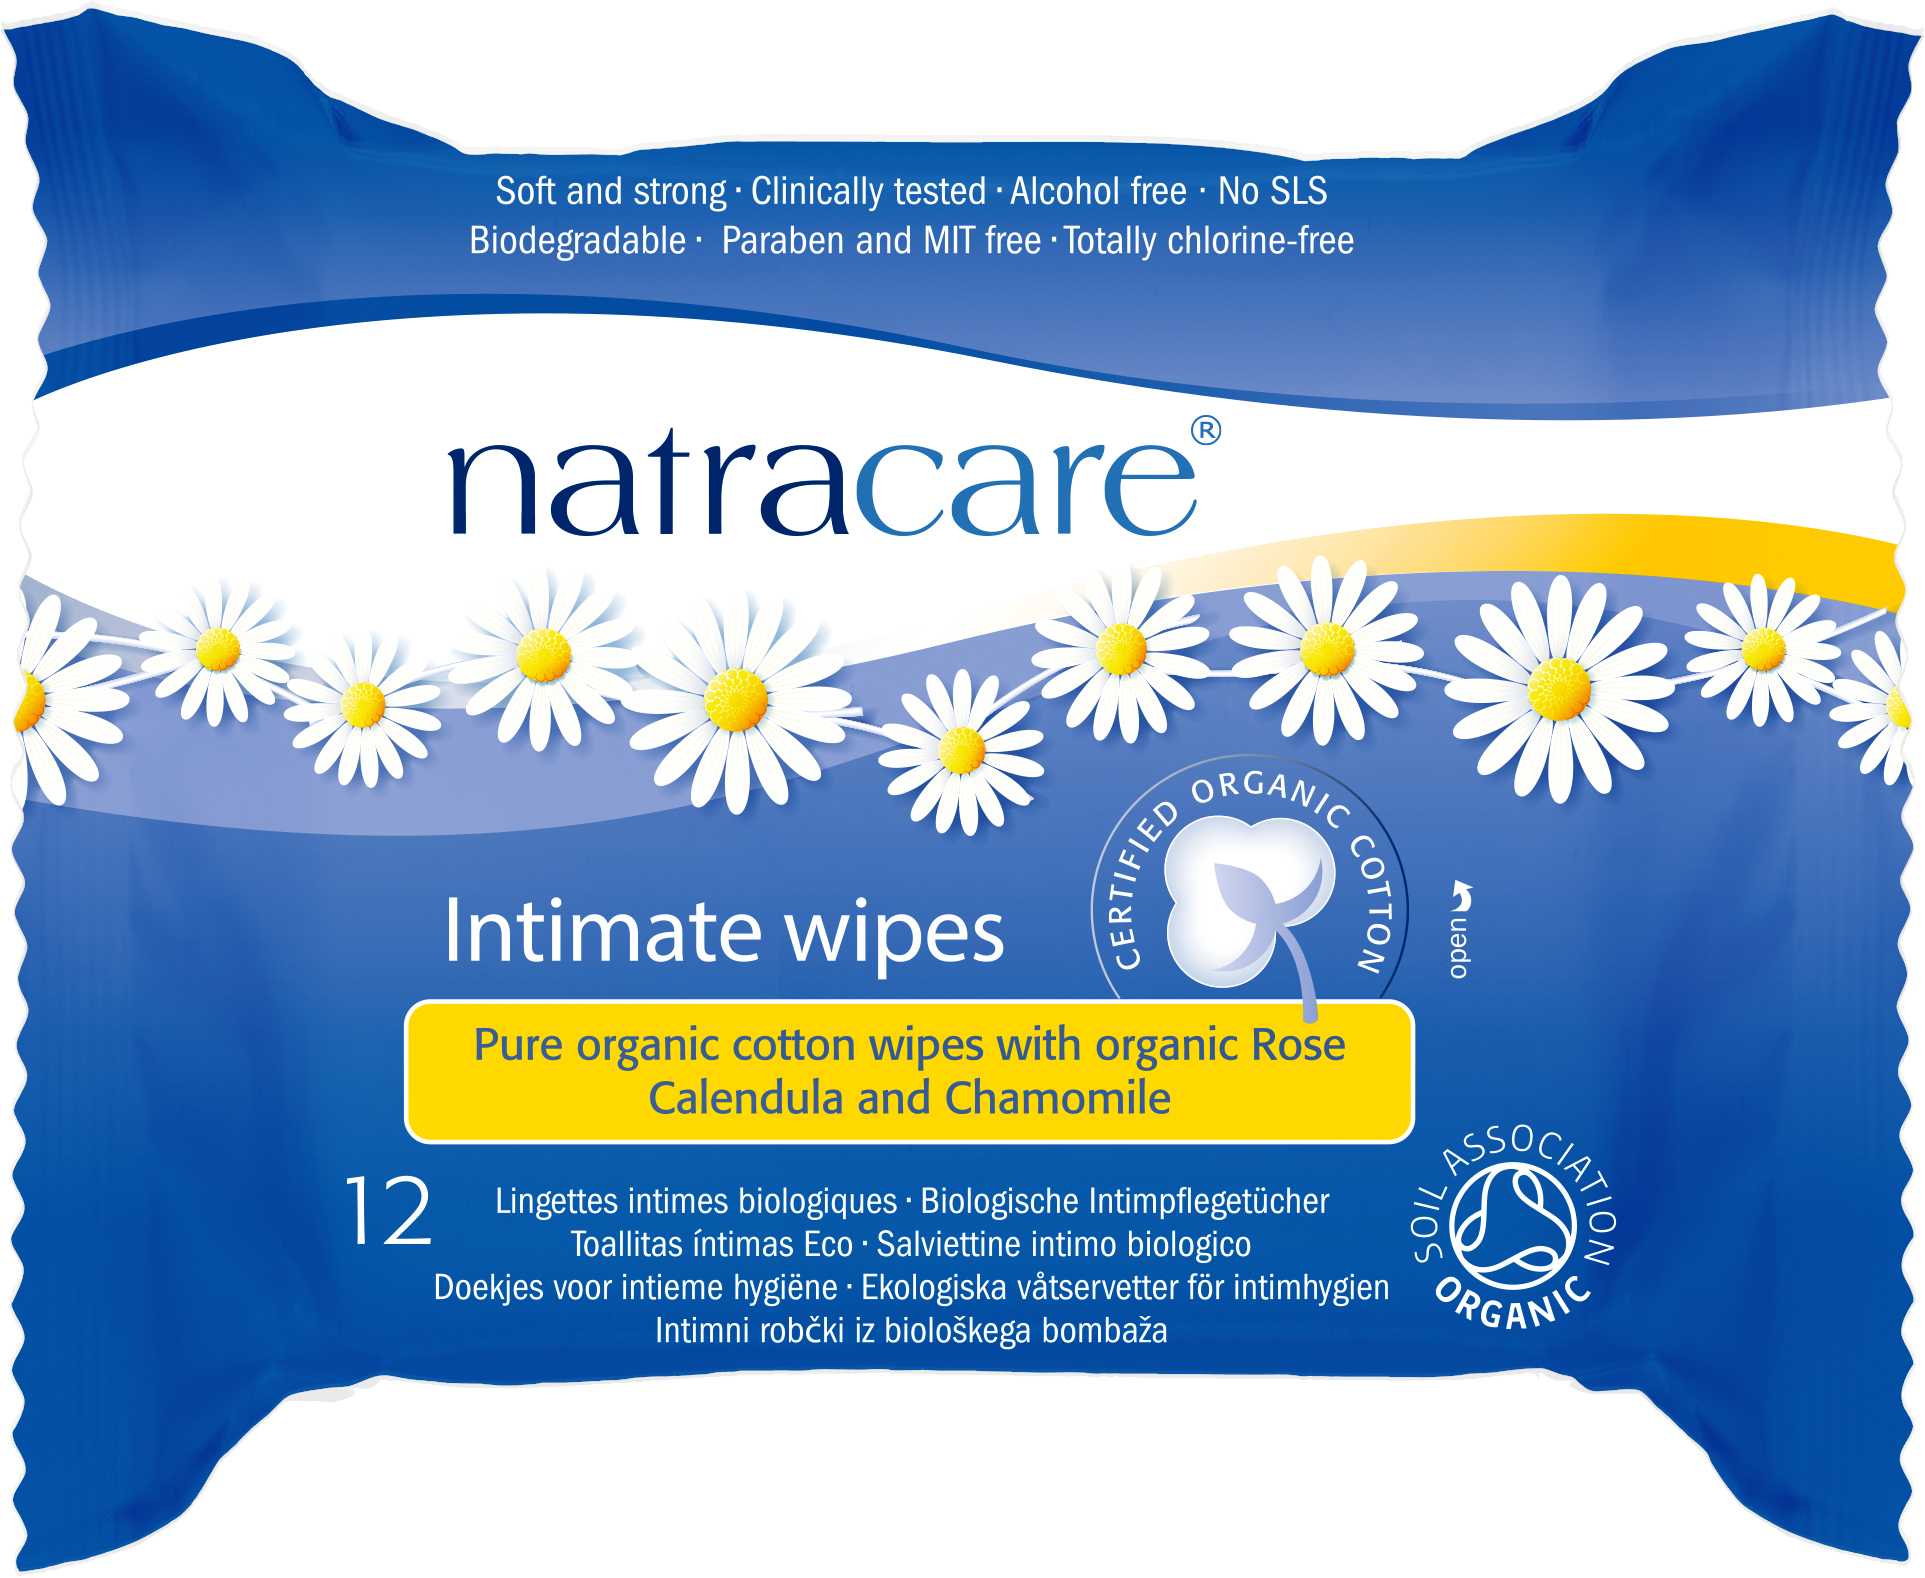 Natracare feminine wipes